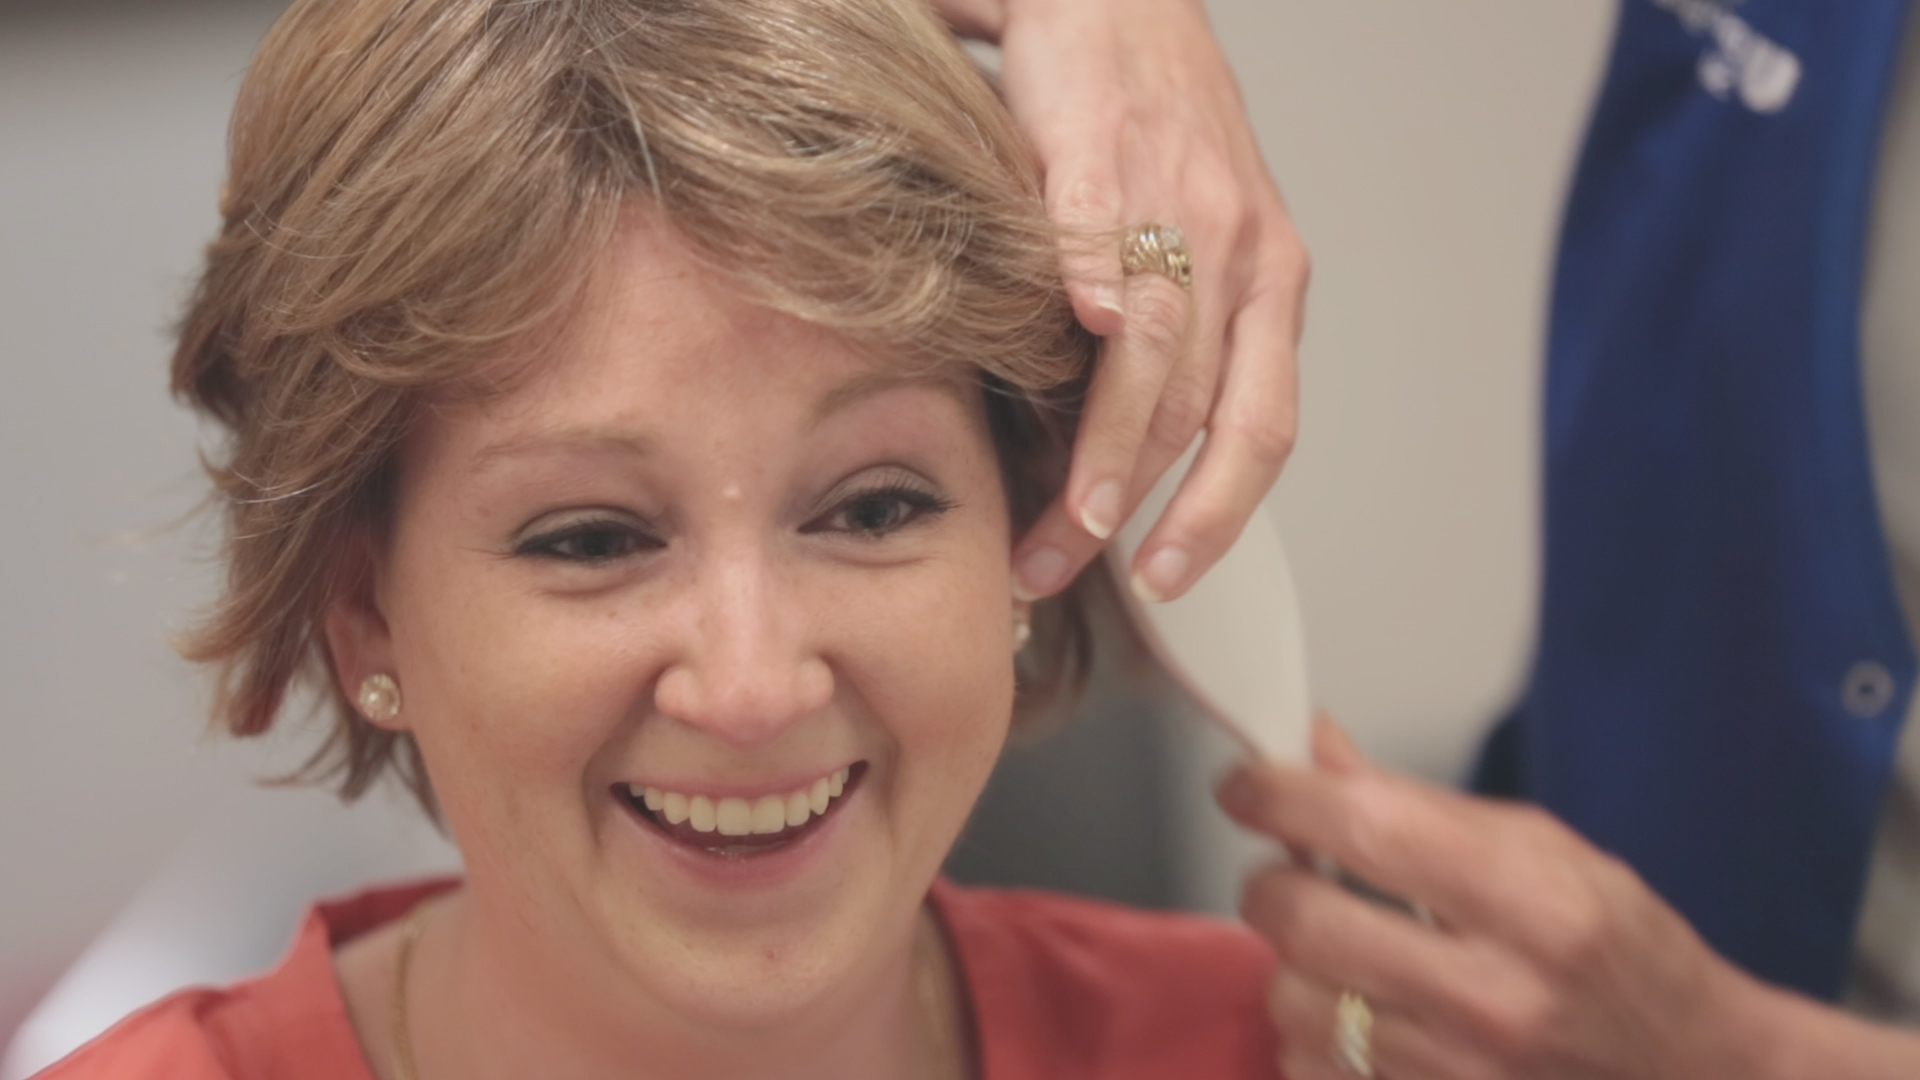 Breast cancer patient Lori Elliott smiles while trying wig on at Duke Cancer Institute